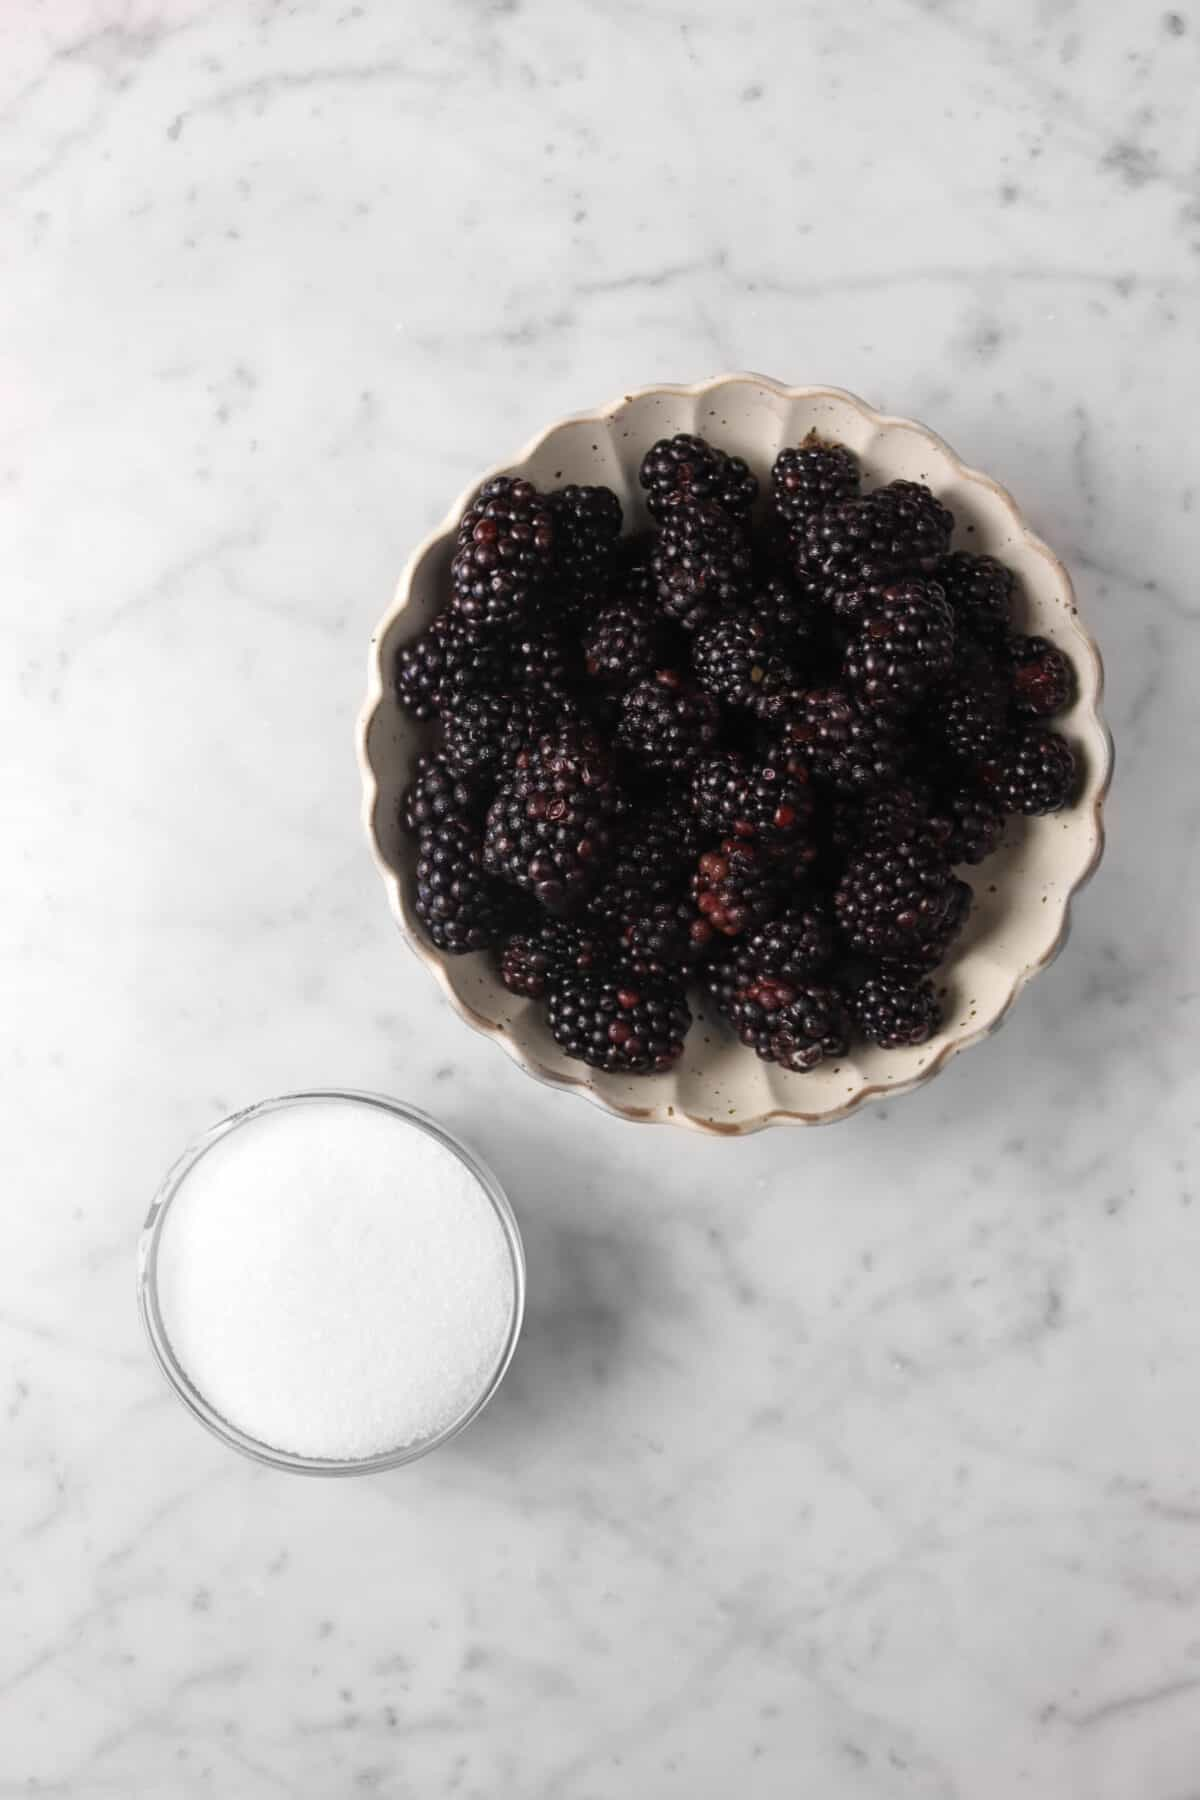 blackberries and sugar on a marble counter